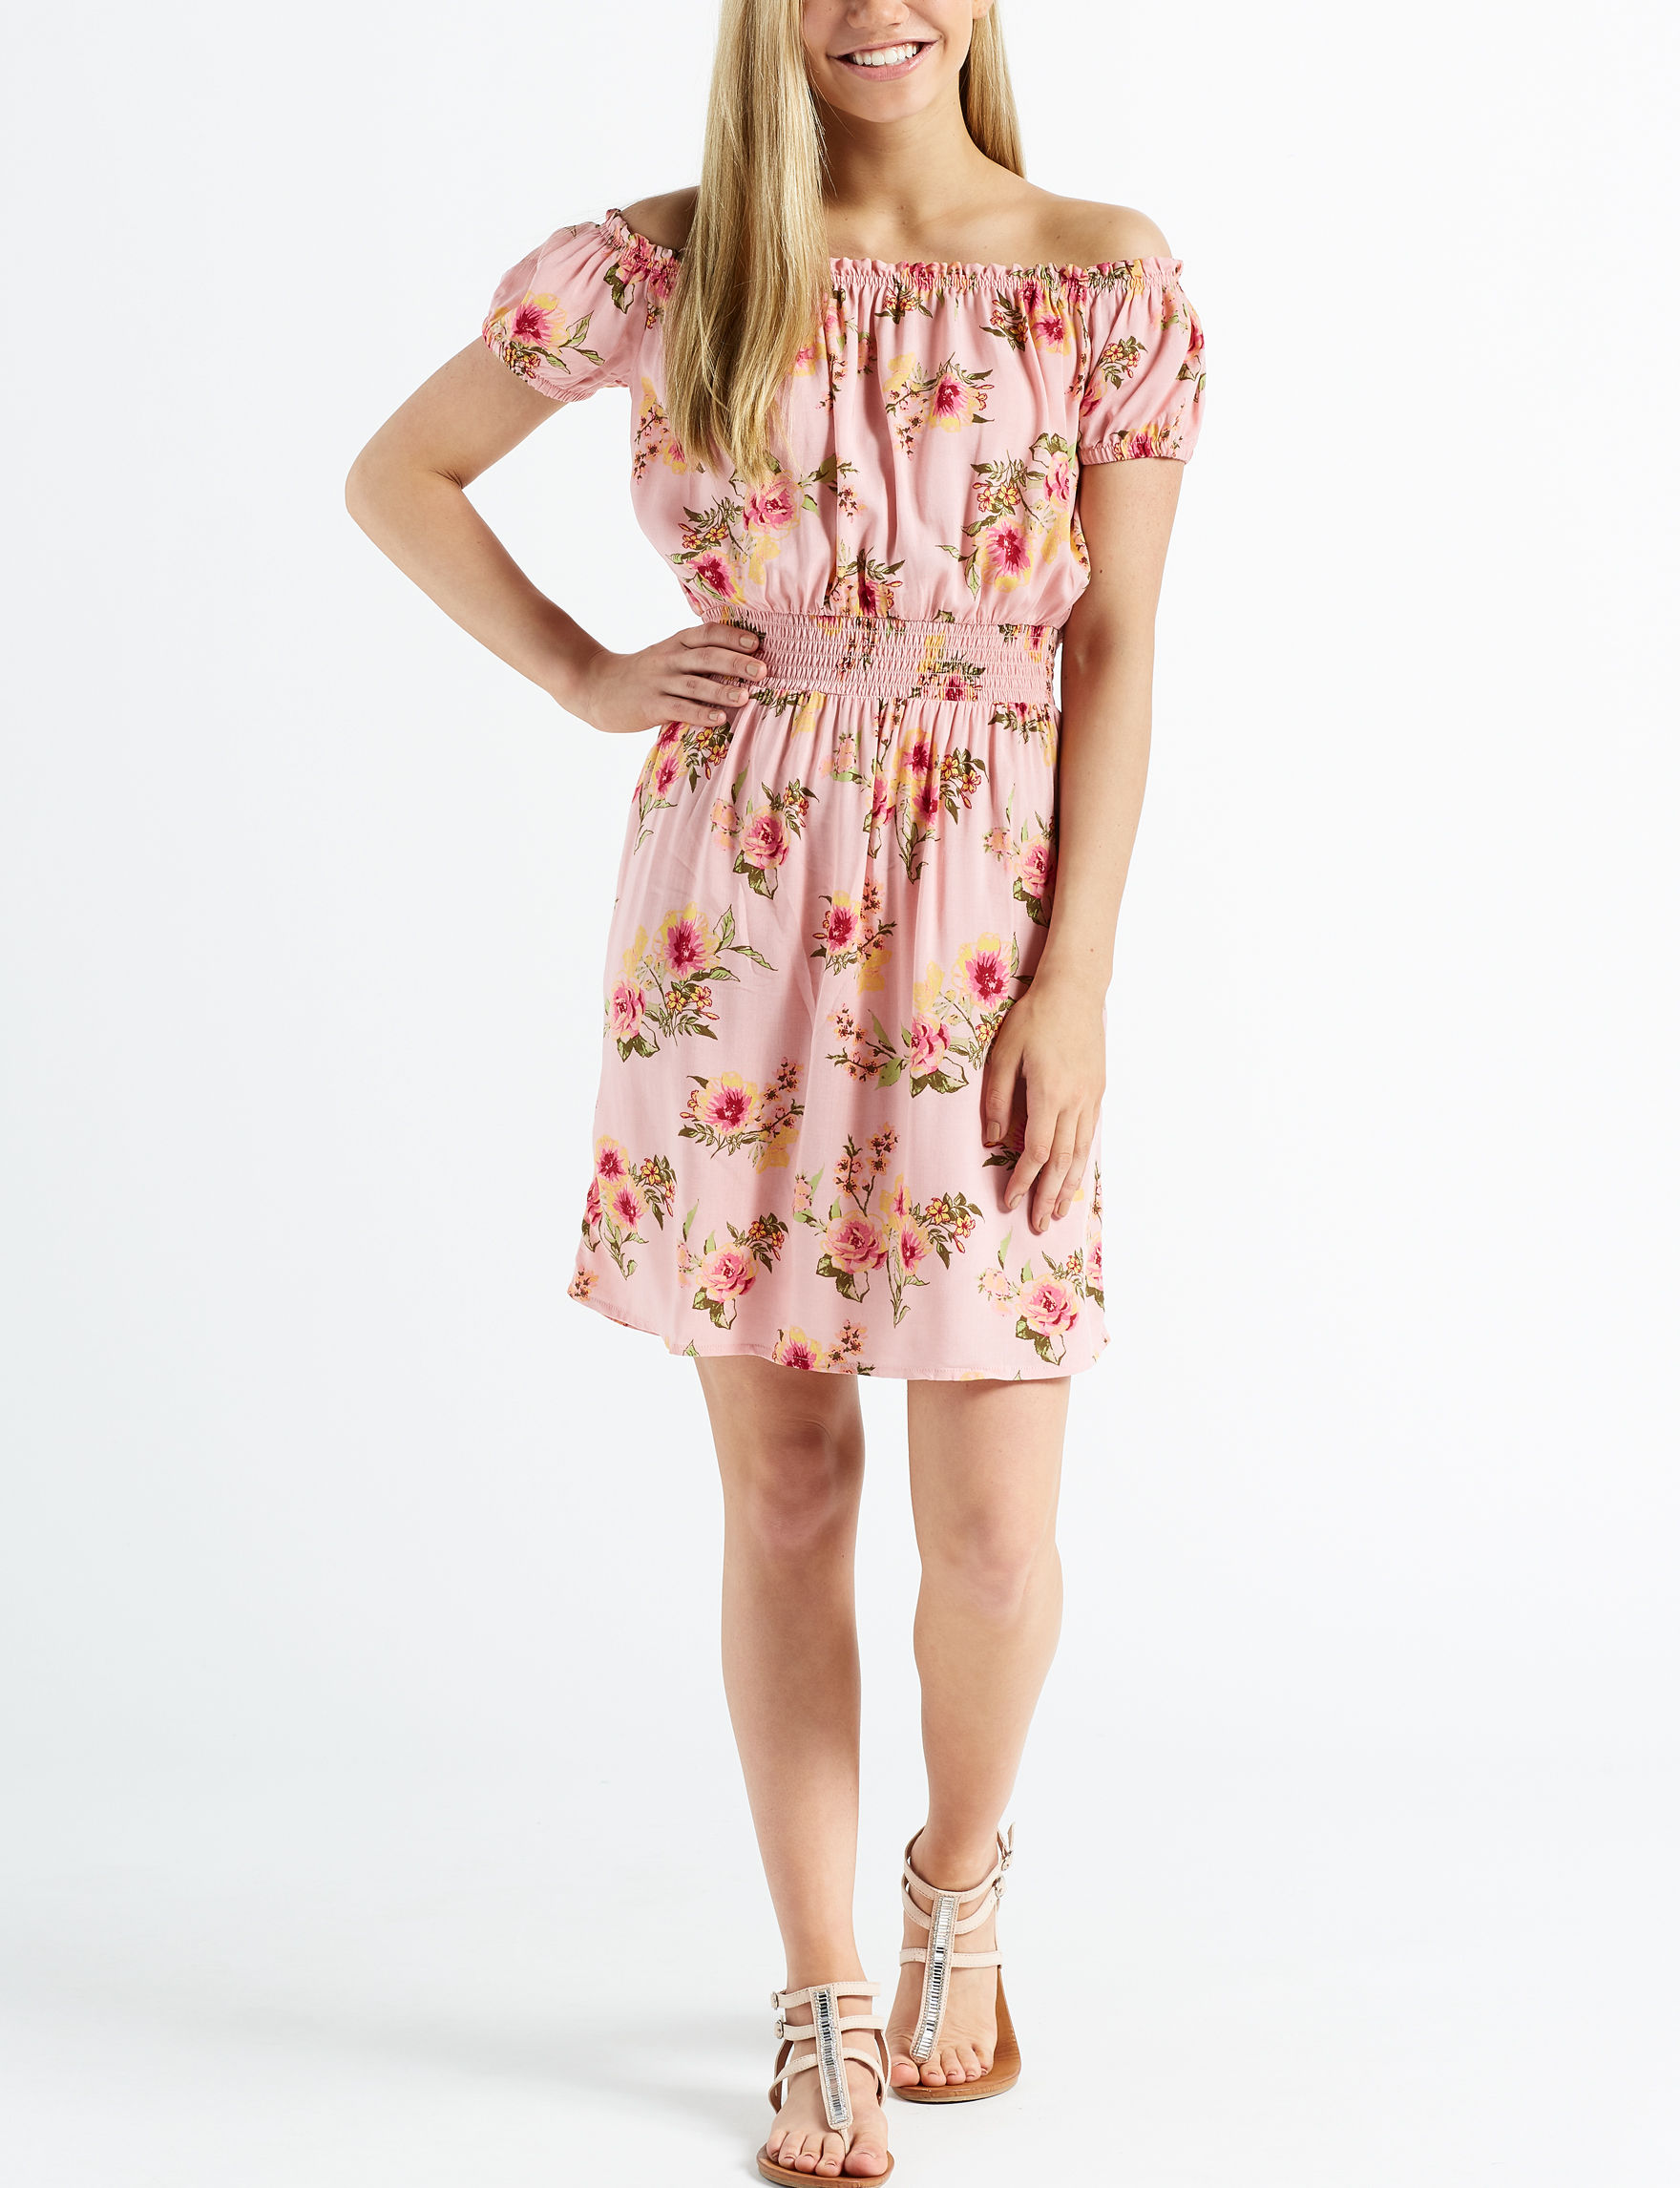 Wishful Park Pink Floral Everyday & Casual Fit & Flare Dresses